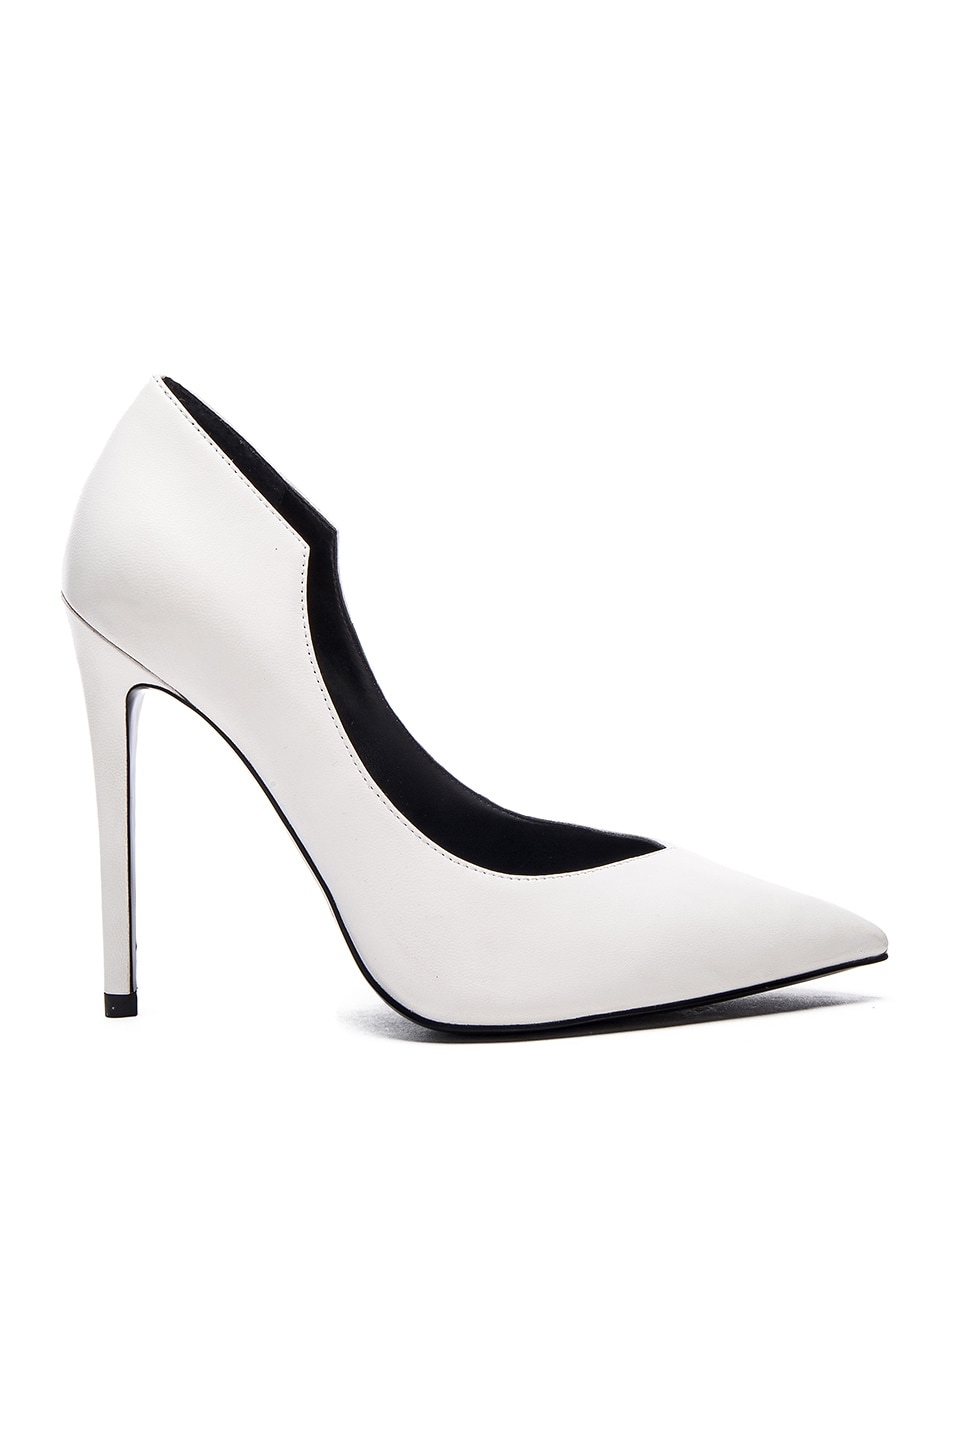 KENDALL   KYLIE Abi Heel in White Leather | REVOLVE